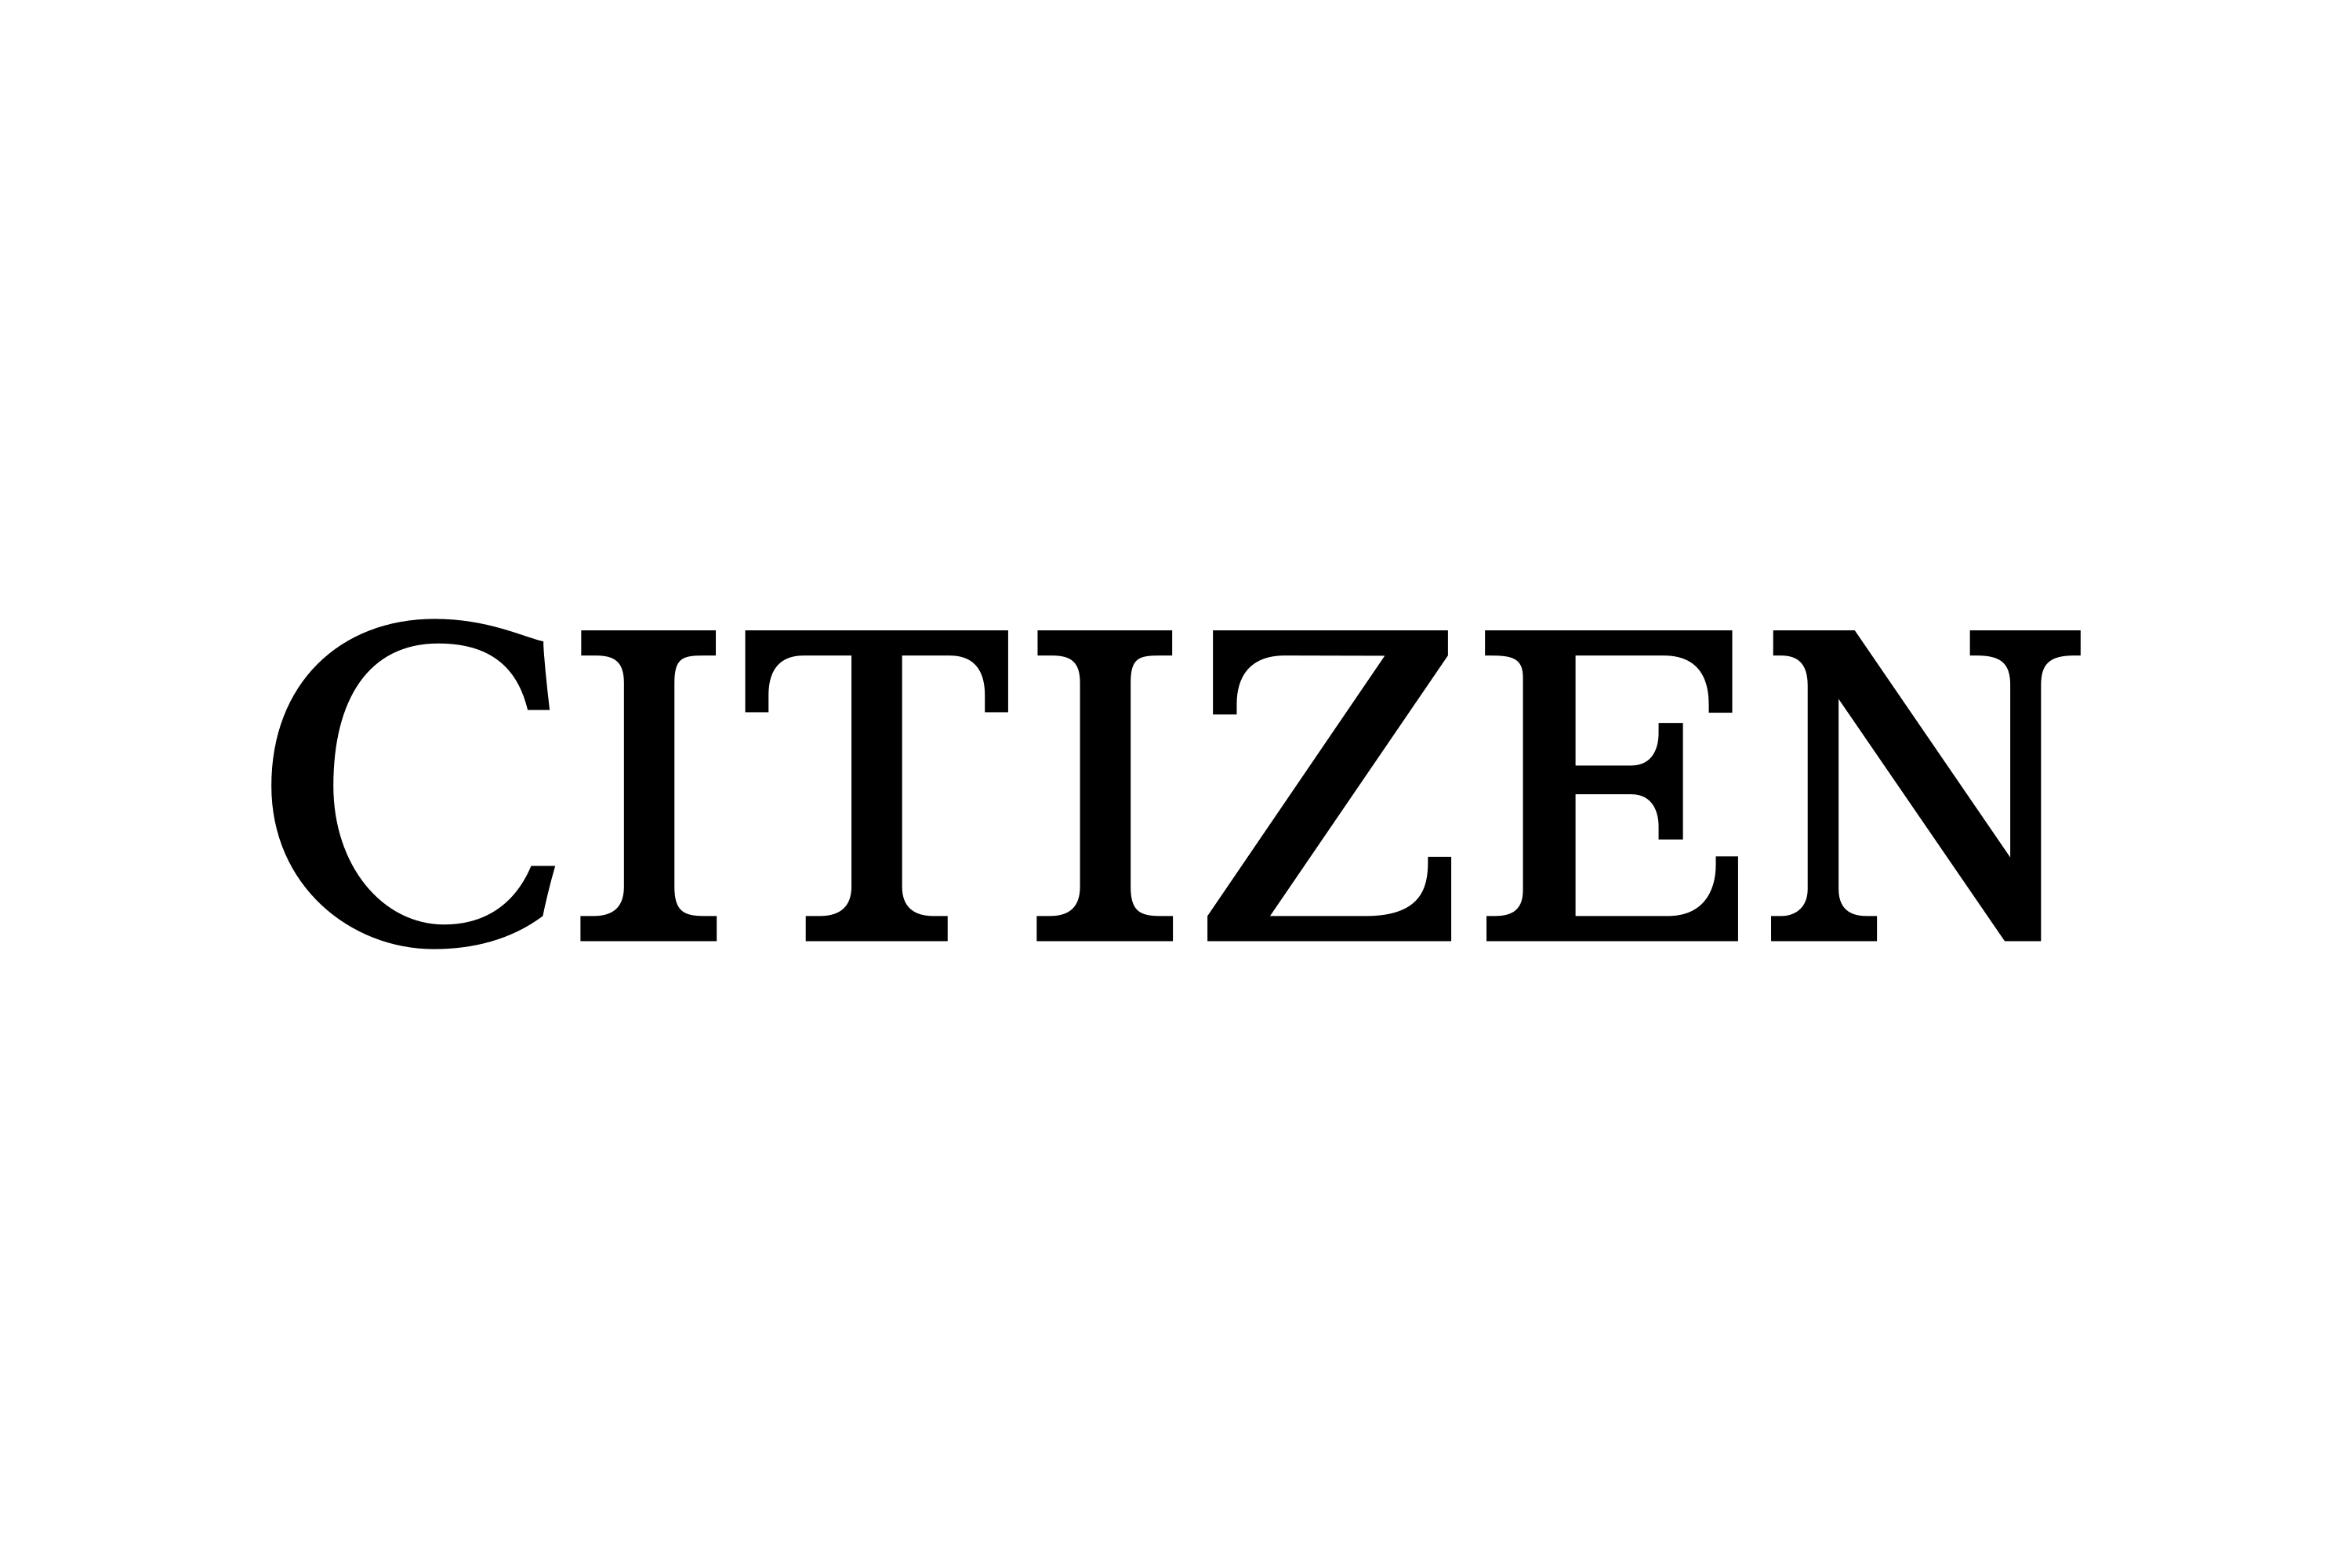 Download Citizen Watch Logo In Svg Vector Or Png File Format Logo Wine